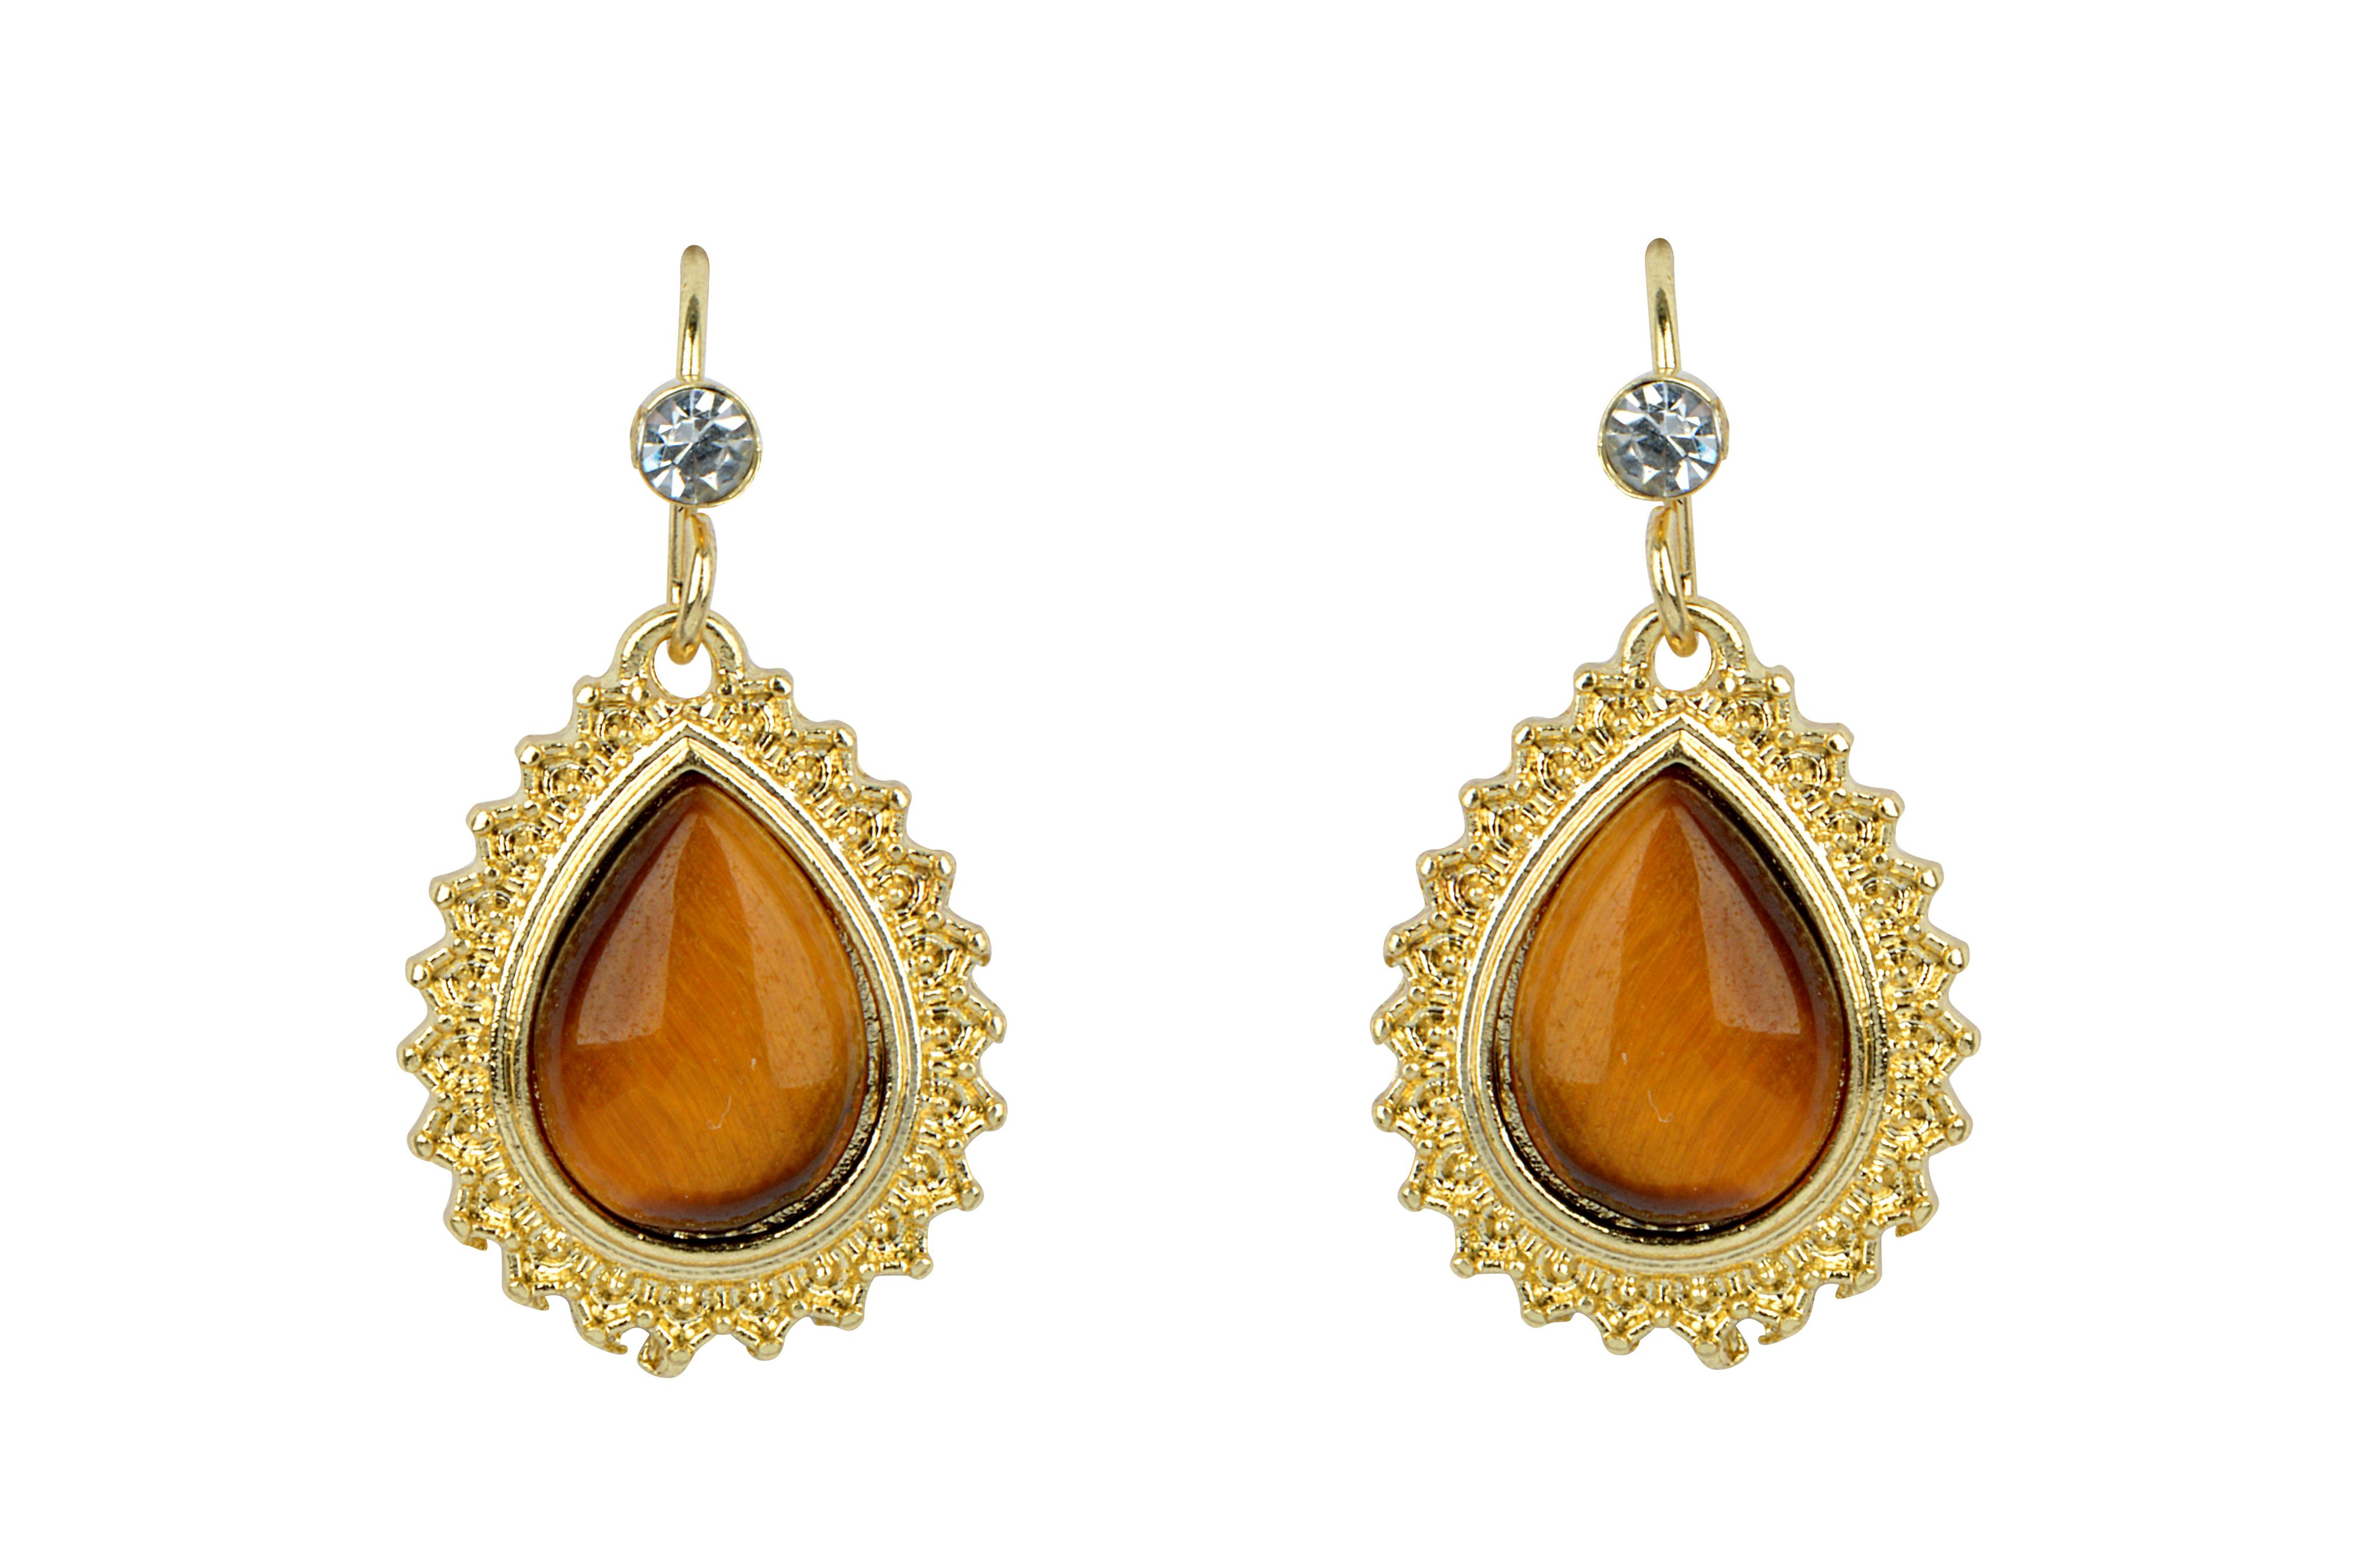 Eva tiger eye tear drop earrings